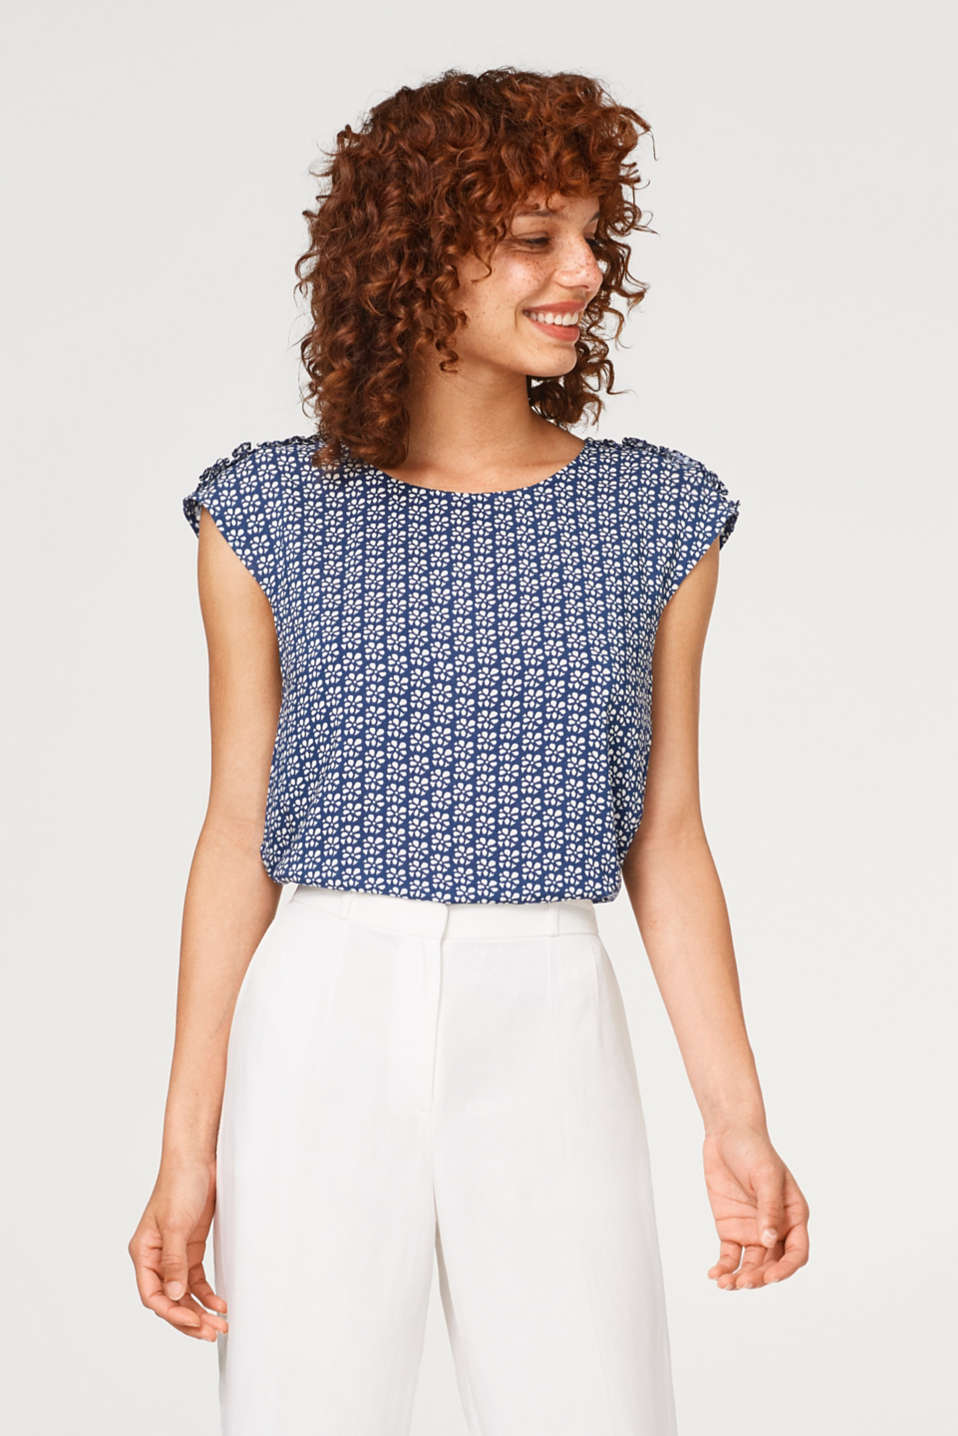 edc - Blouse top with a pattern print and frill details